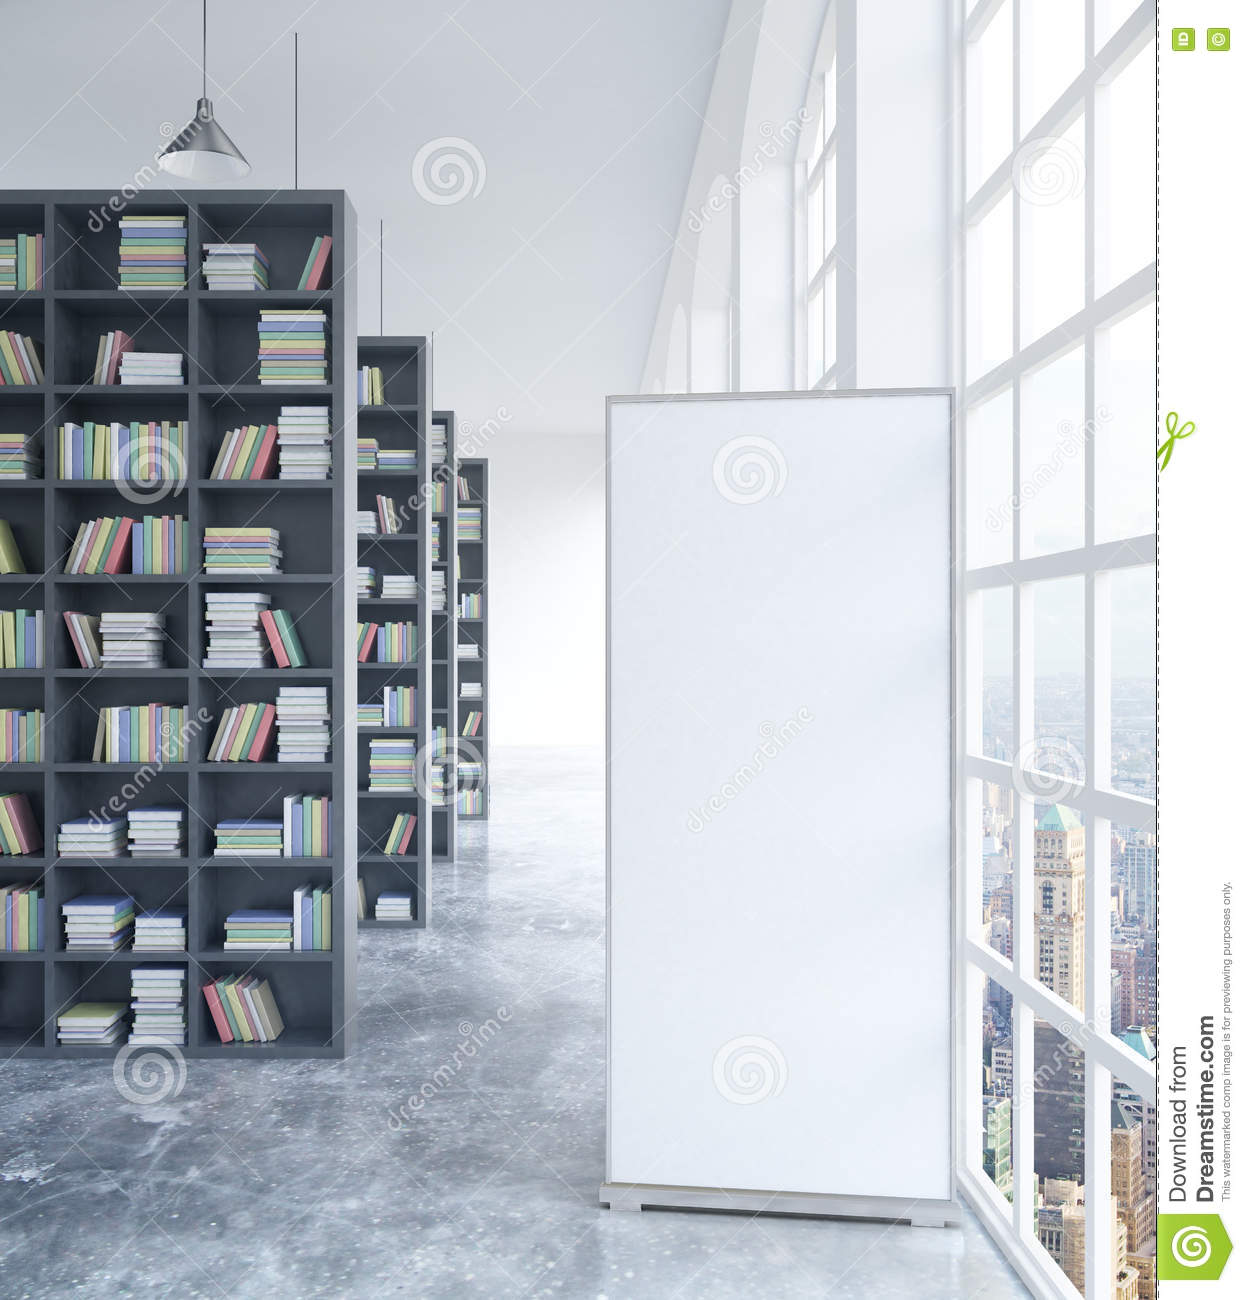 white stand in library stock illustration